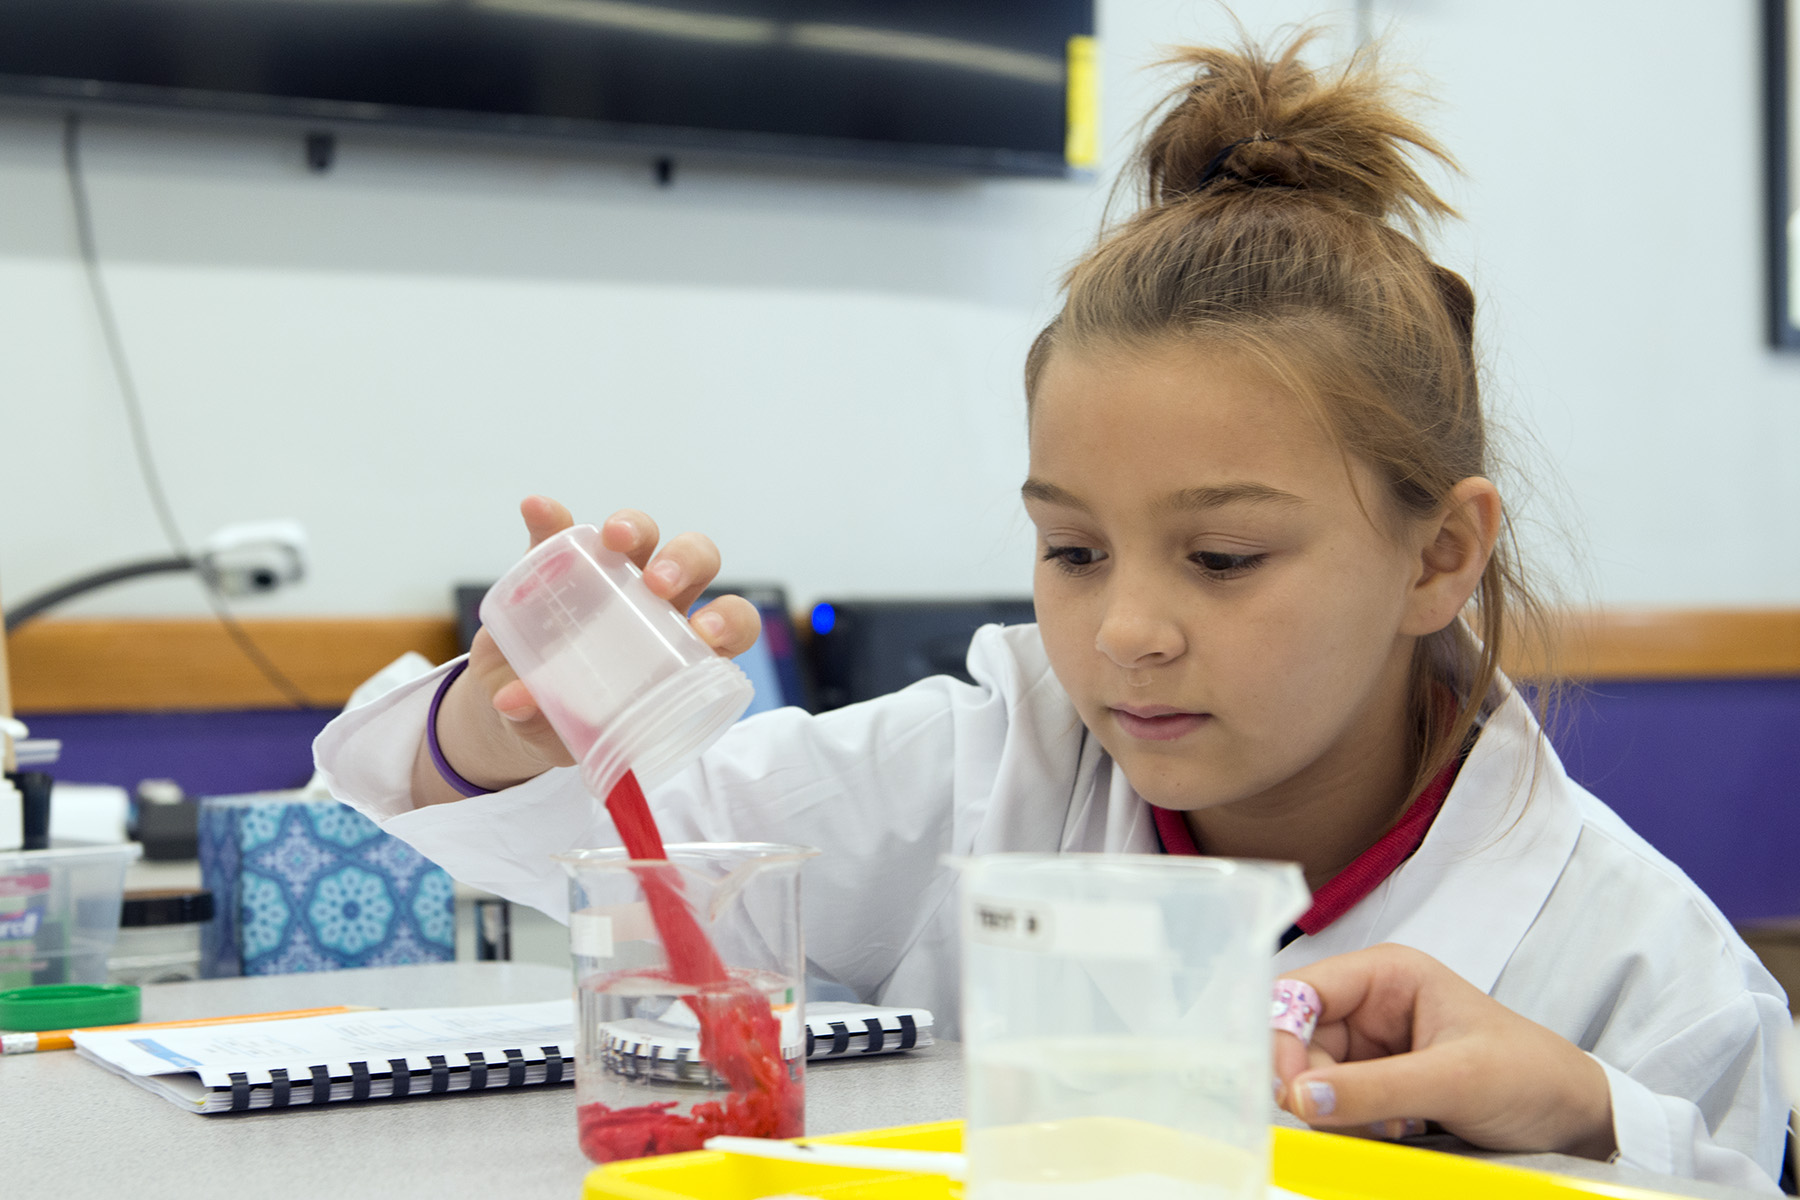 A young girl in a lab coat pouring a red liquid into a beaker